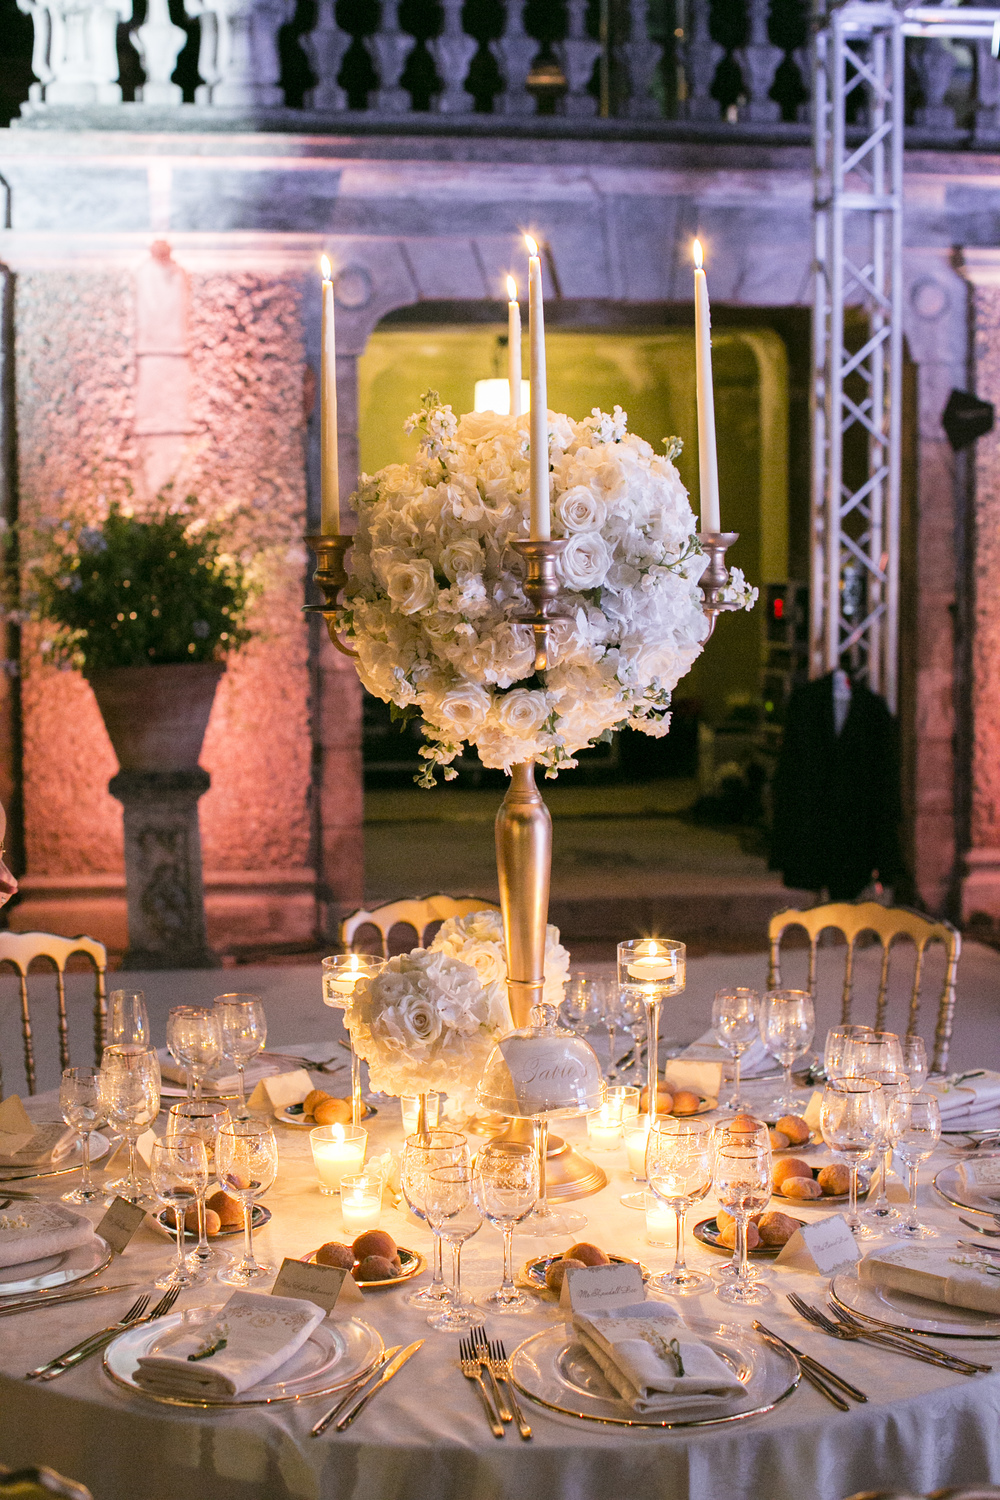 Ceci_New_York_Wedding_Lake_Como_Italy_Luxury_Style_Real_Bride_108.jpg